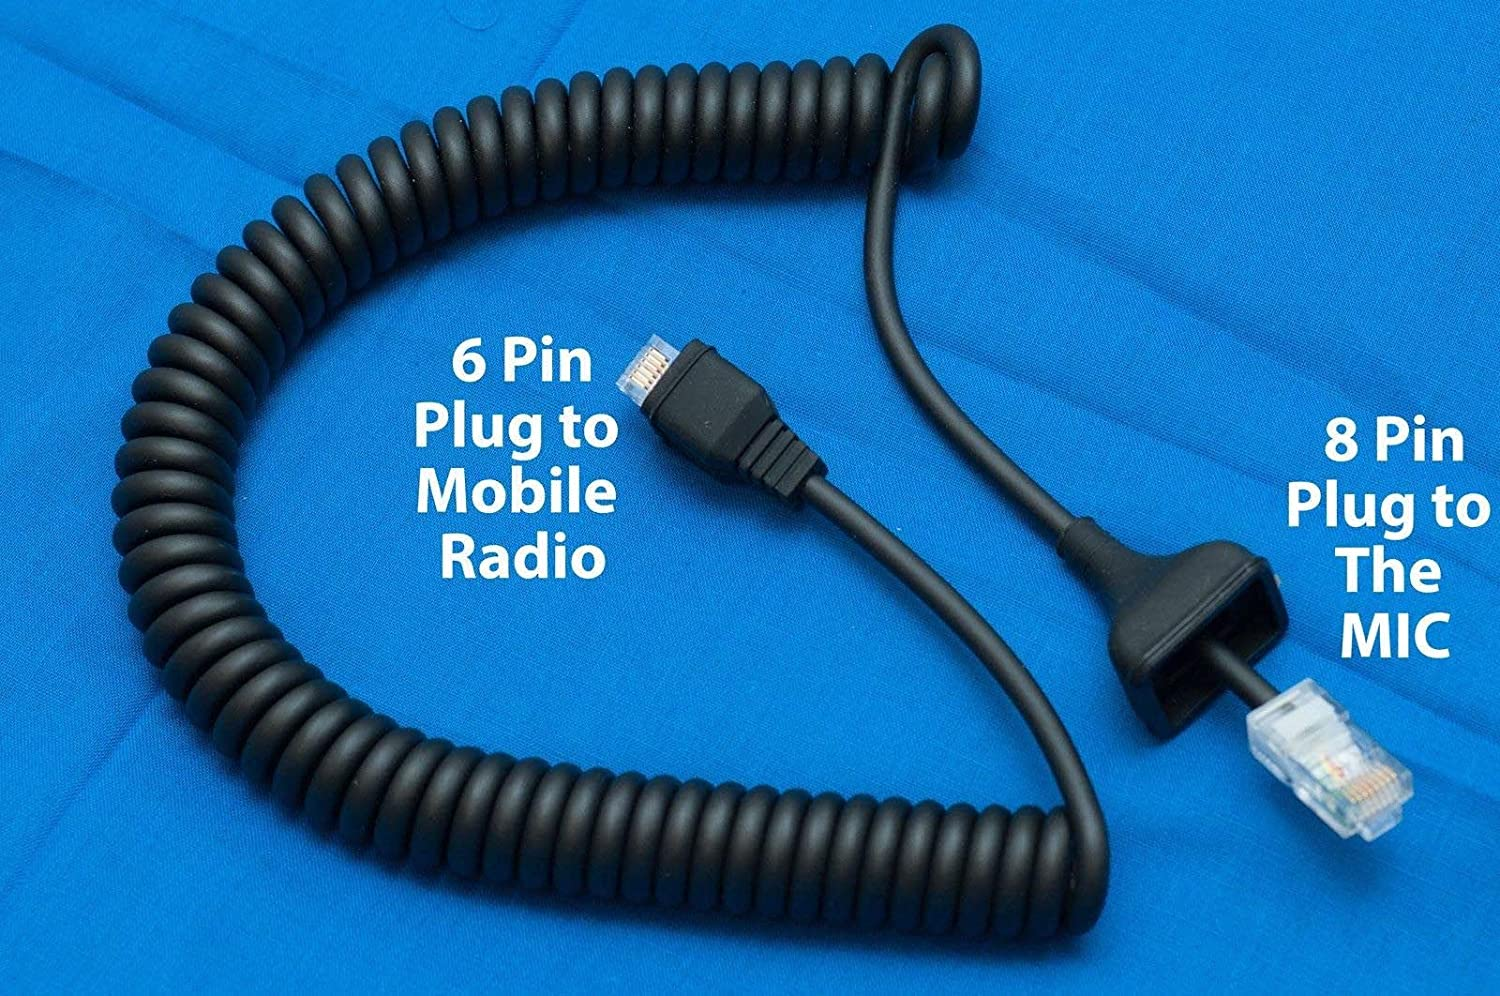 new Replacement Cable Cord for KMC-30  Kenwood Radio TK-830 TK-808 TK-780 TK-750